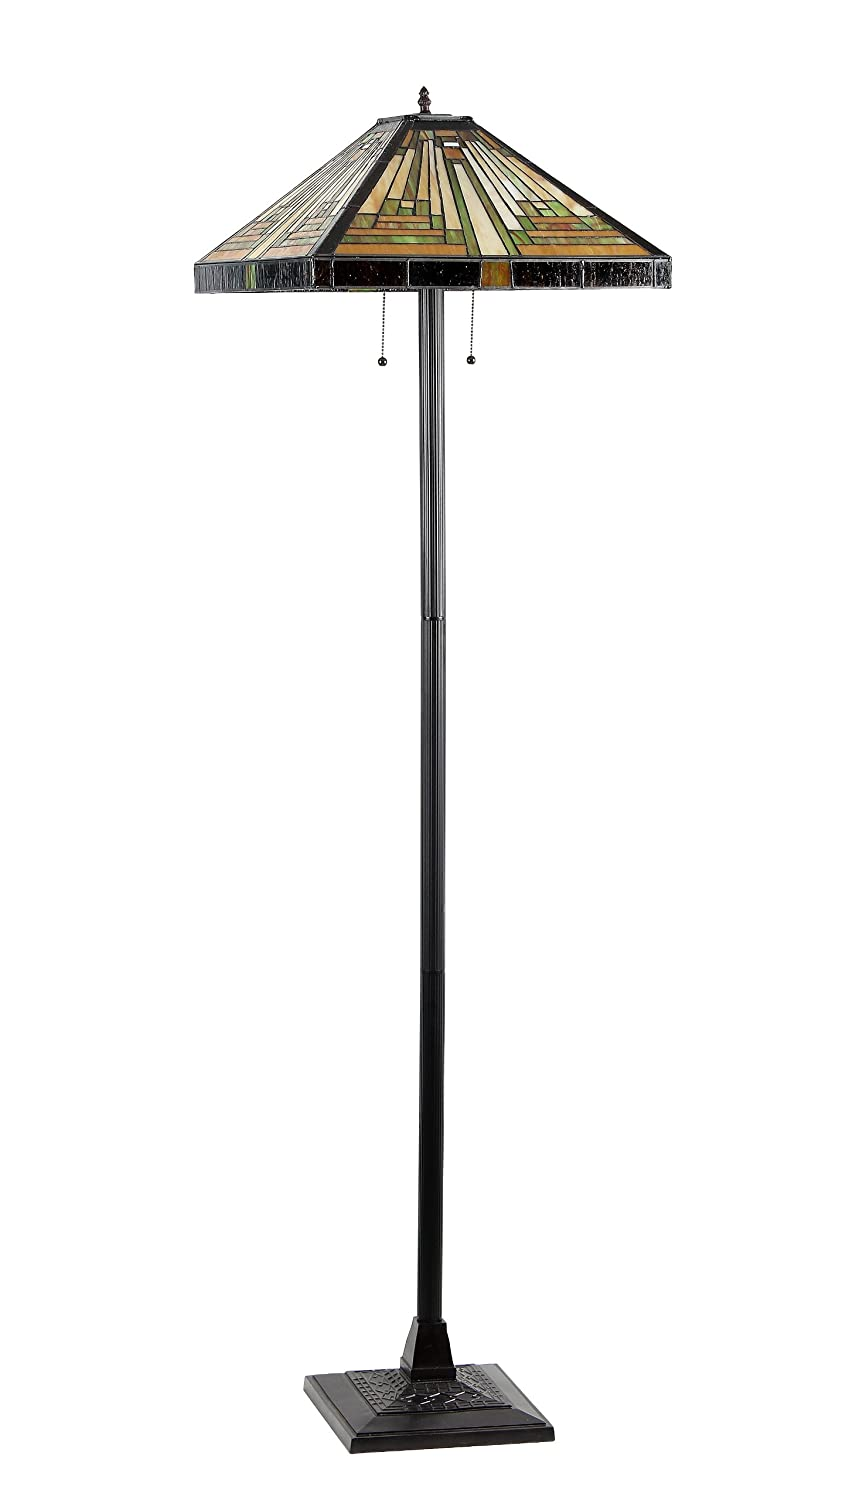 Chloe Lighting CH33359MR18 FL2 Innes Tiffany Style Mission 2 Light Floor Lamp With 18 Inch Shade